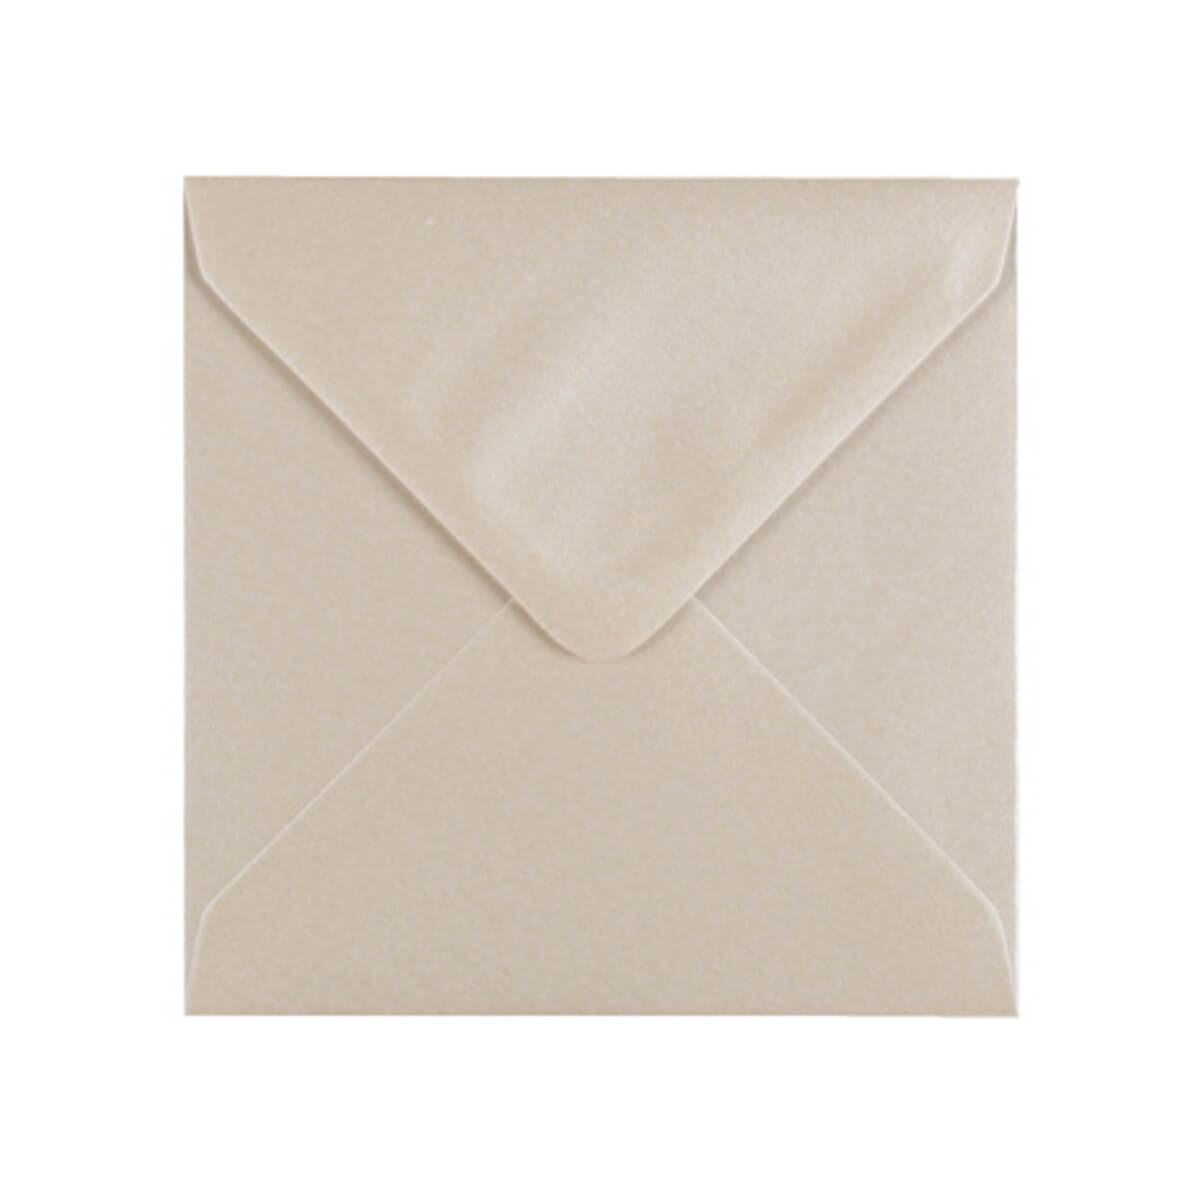 PEARLESCENT OYSTER WHITE 100mm SQUARE ENVELOPES